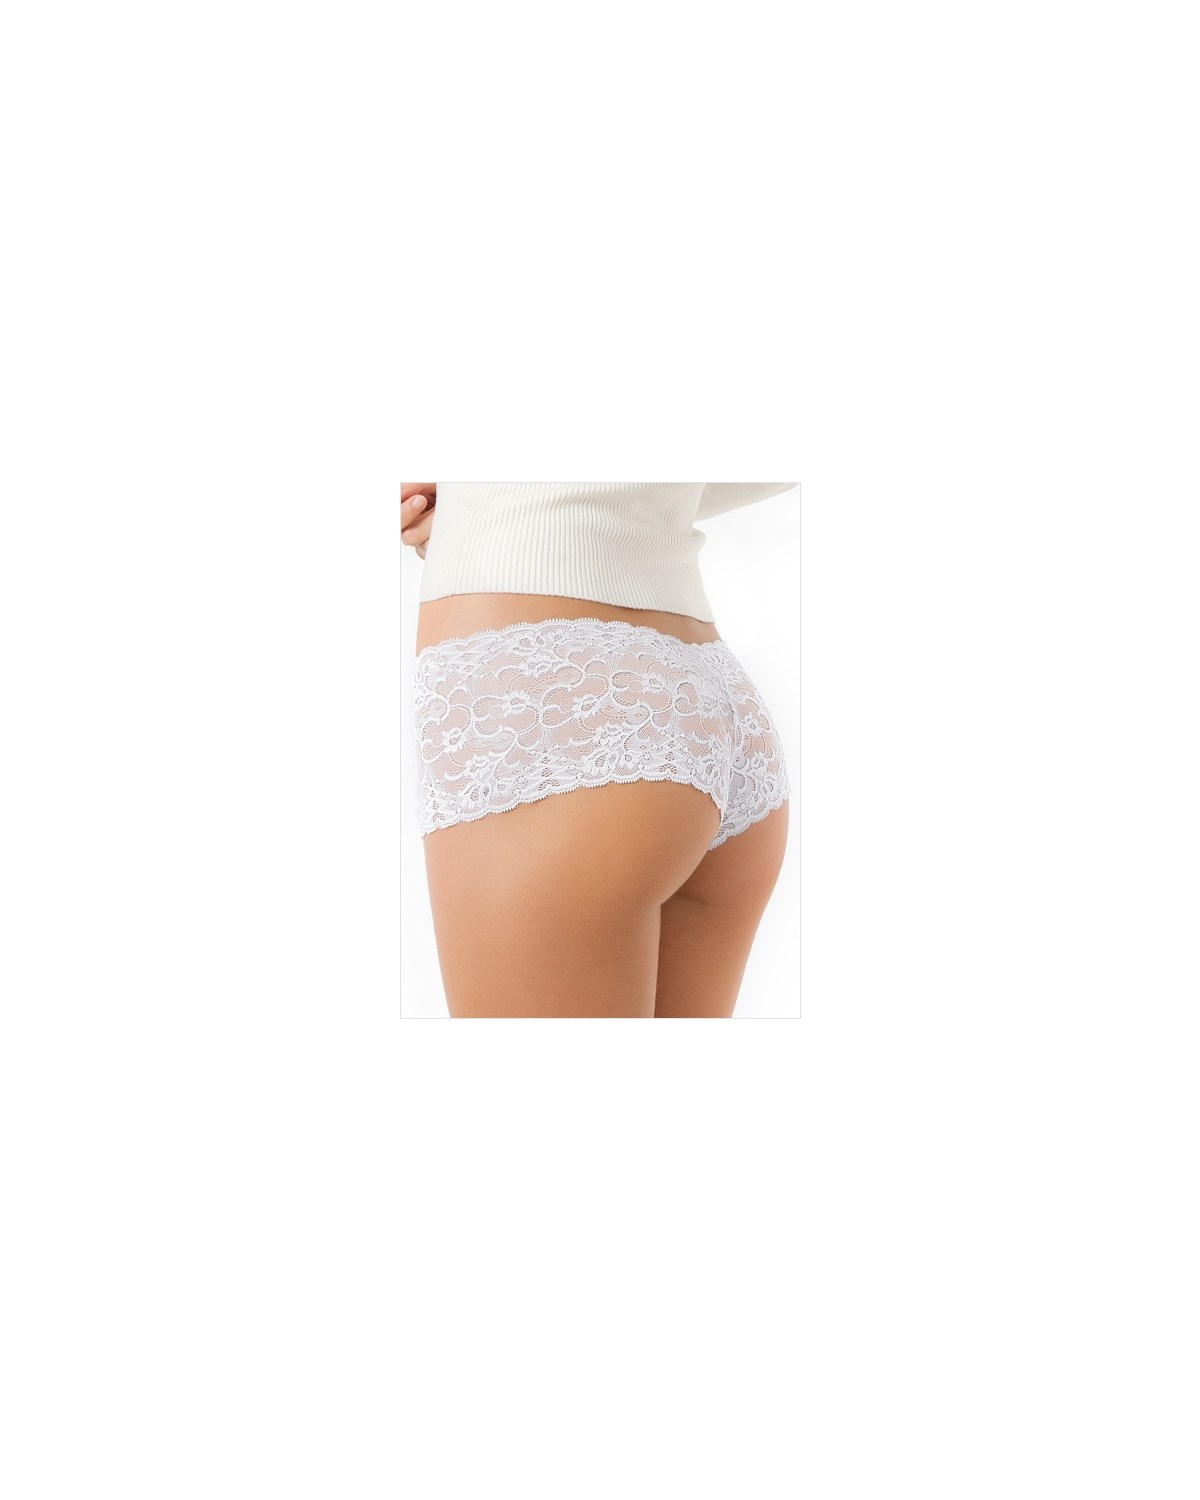 all lace seductive hiphugger panty-000- White-MainImage